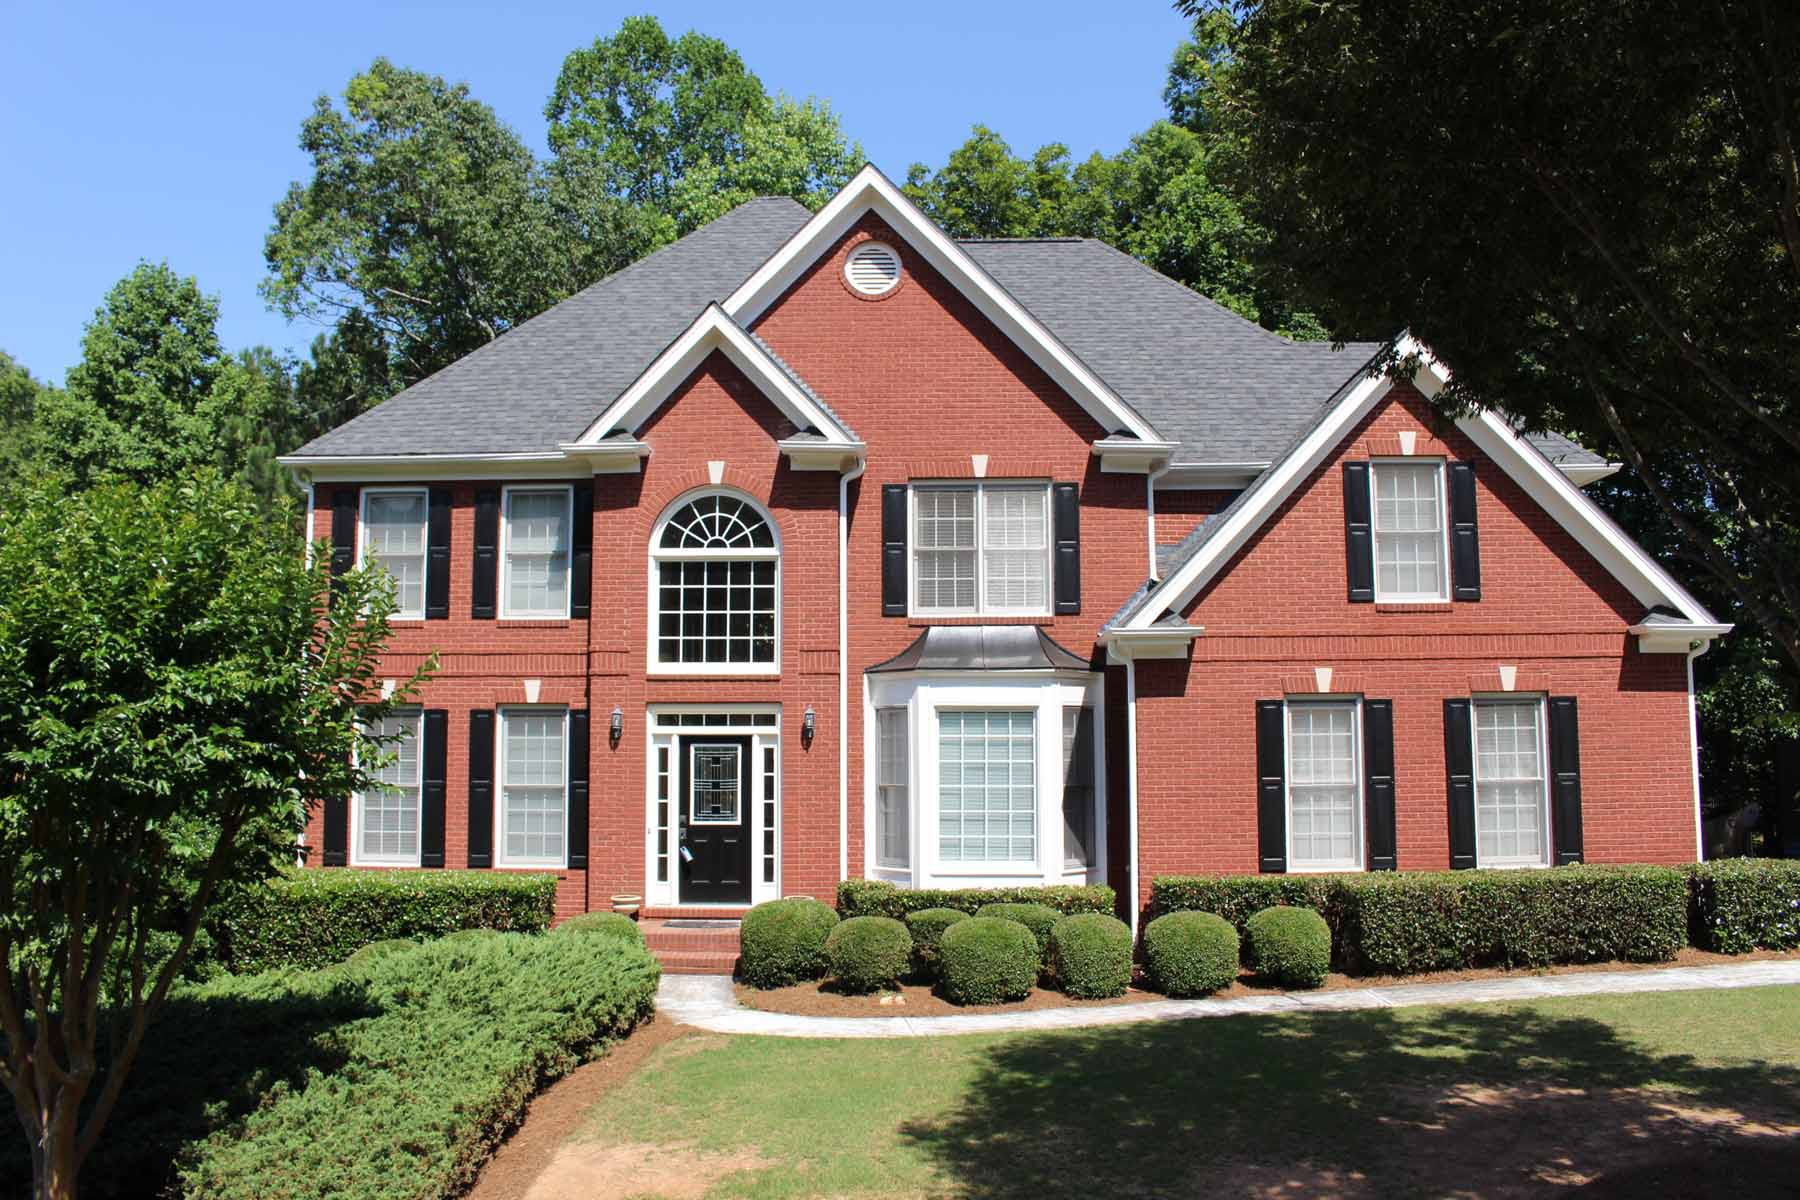 Частный односемейный дом для того Продажа на Gorgeous Traditional With Award Winning Schools and Forsyth County Taxes 6225 Crofton Drive Alpharetta, Джорджия 30005 Соединенные Штаты